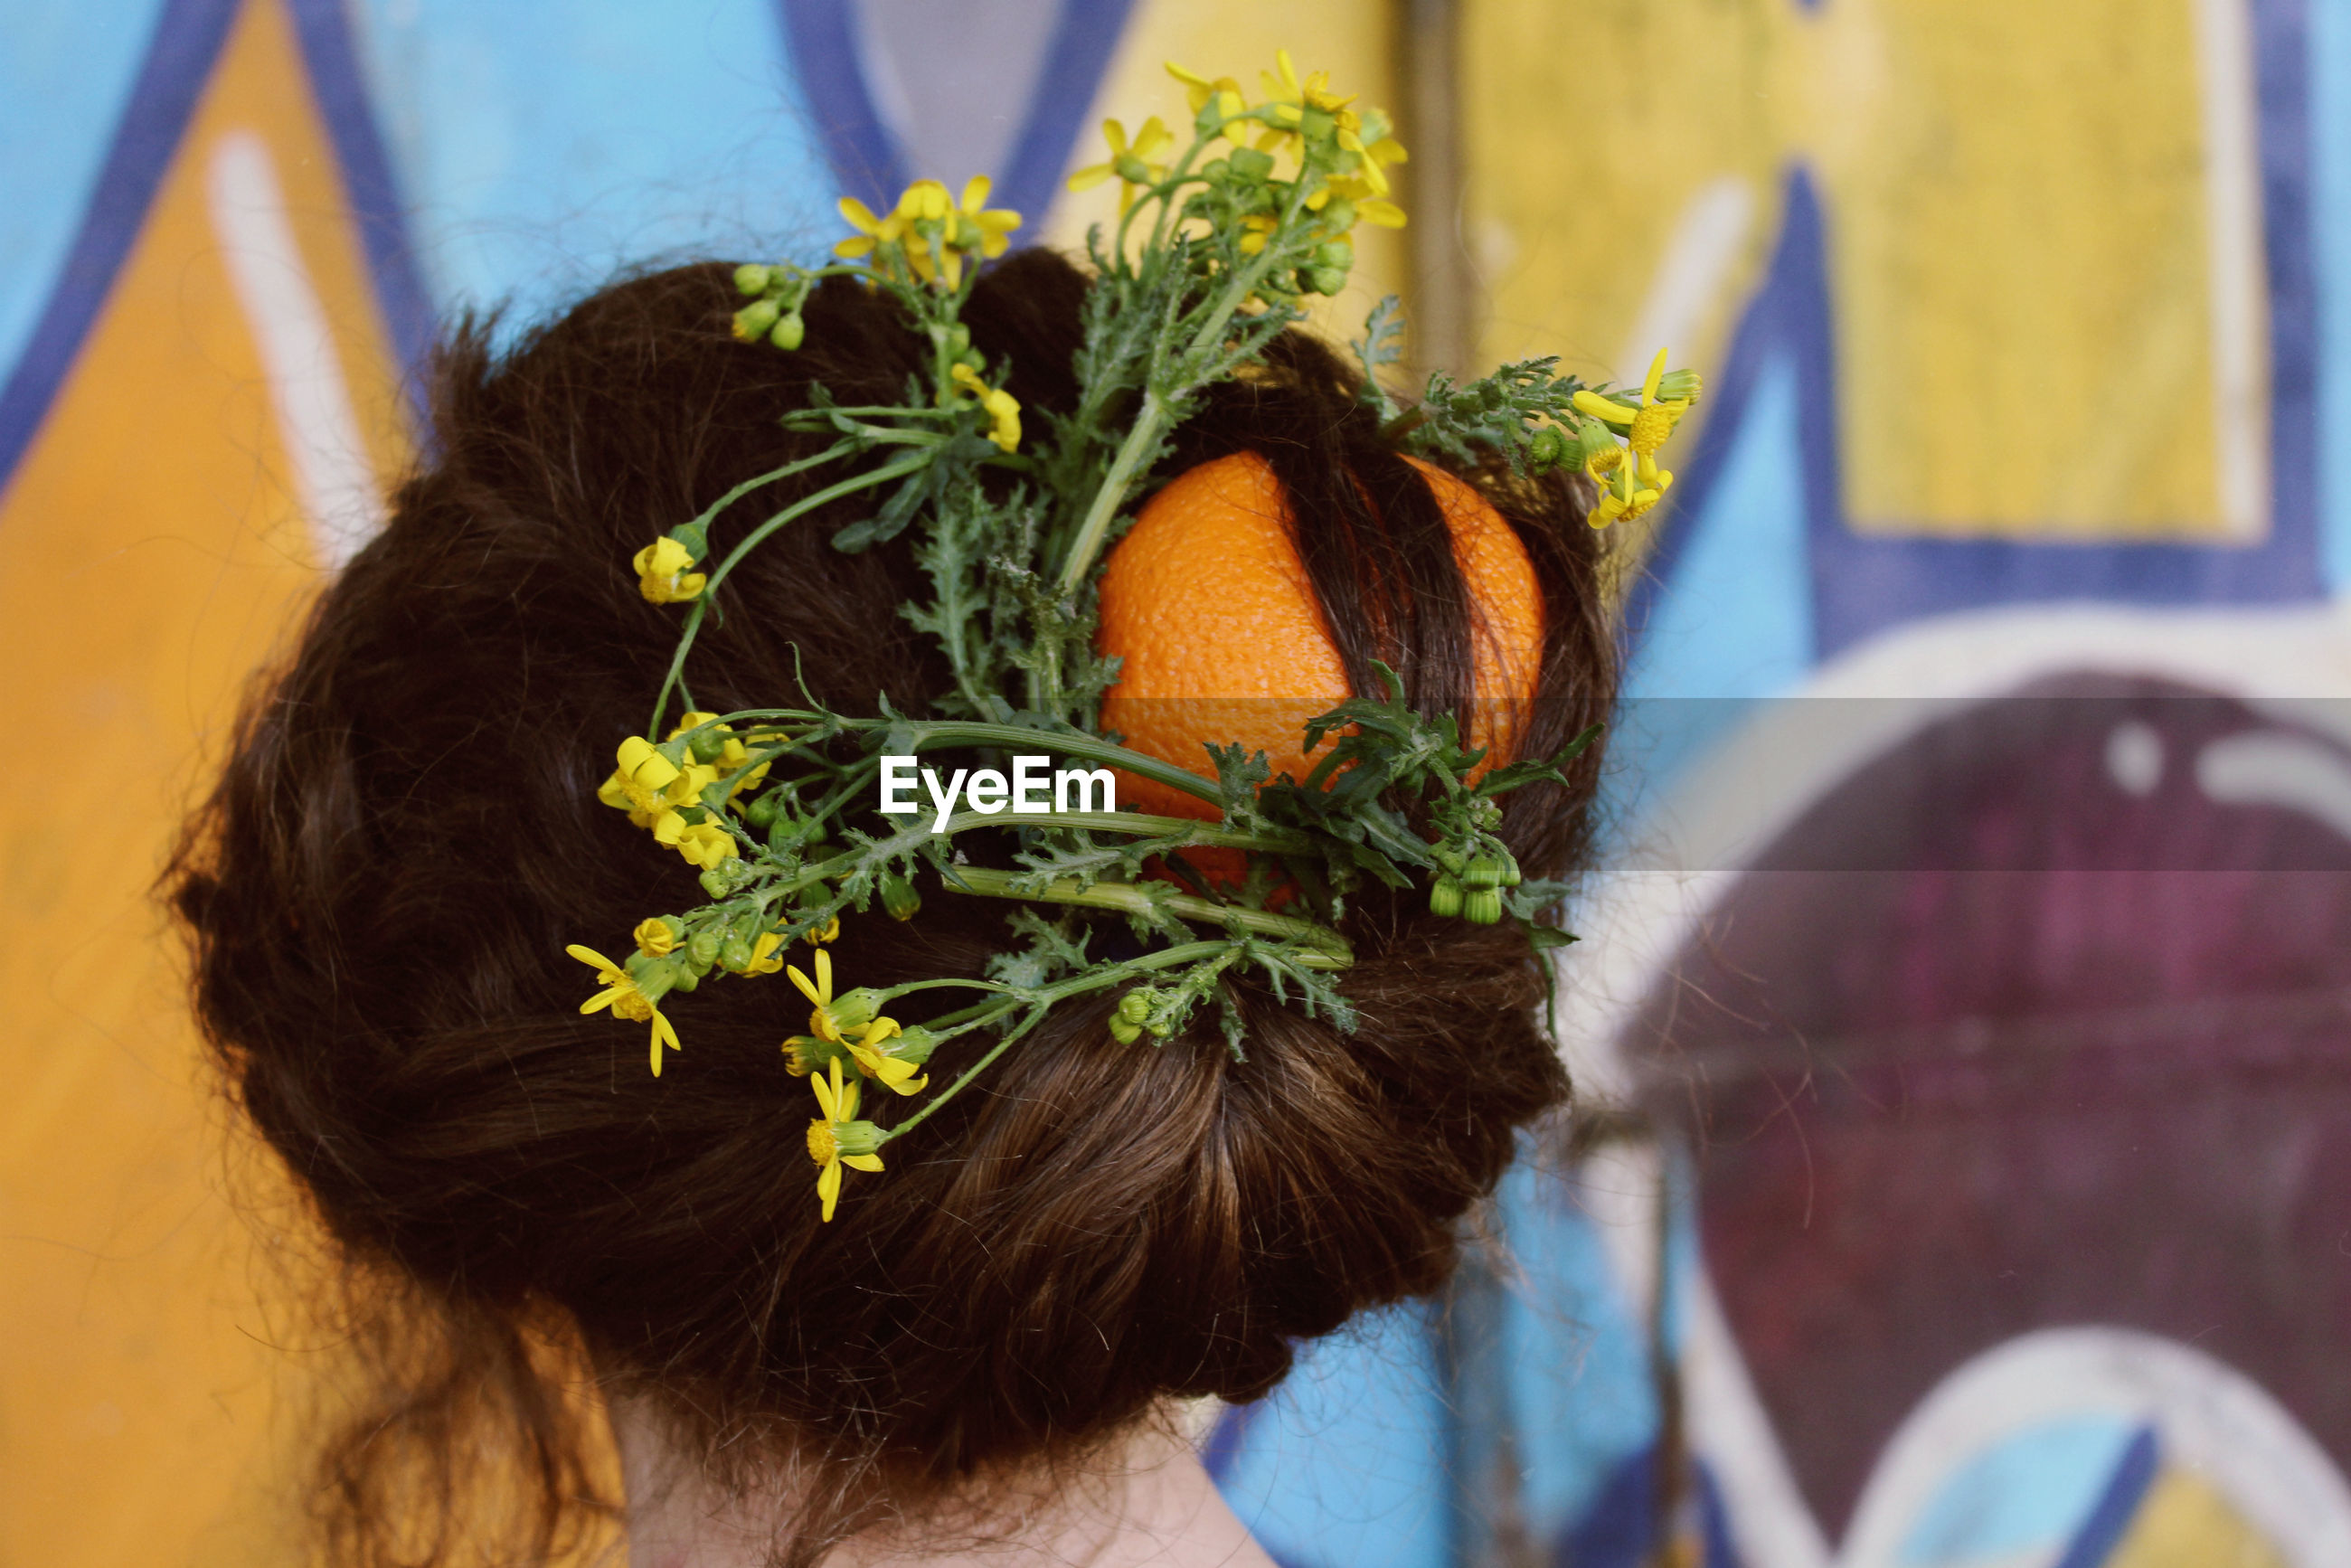 Rear view of woman with flowers and orange in hair